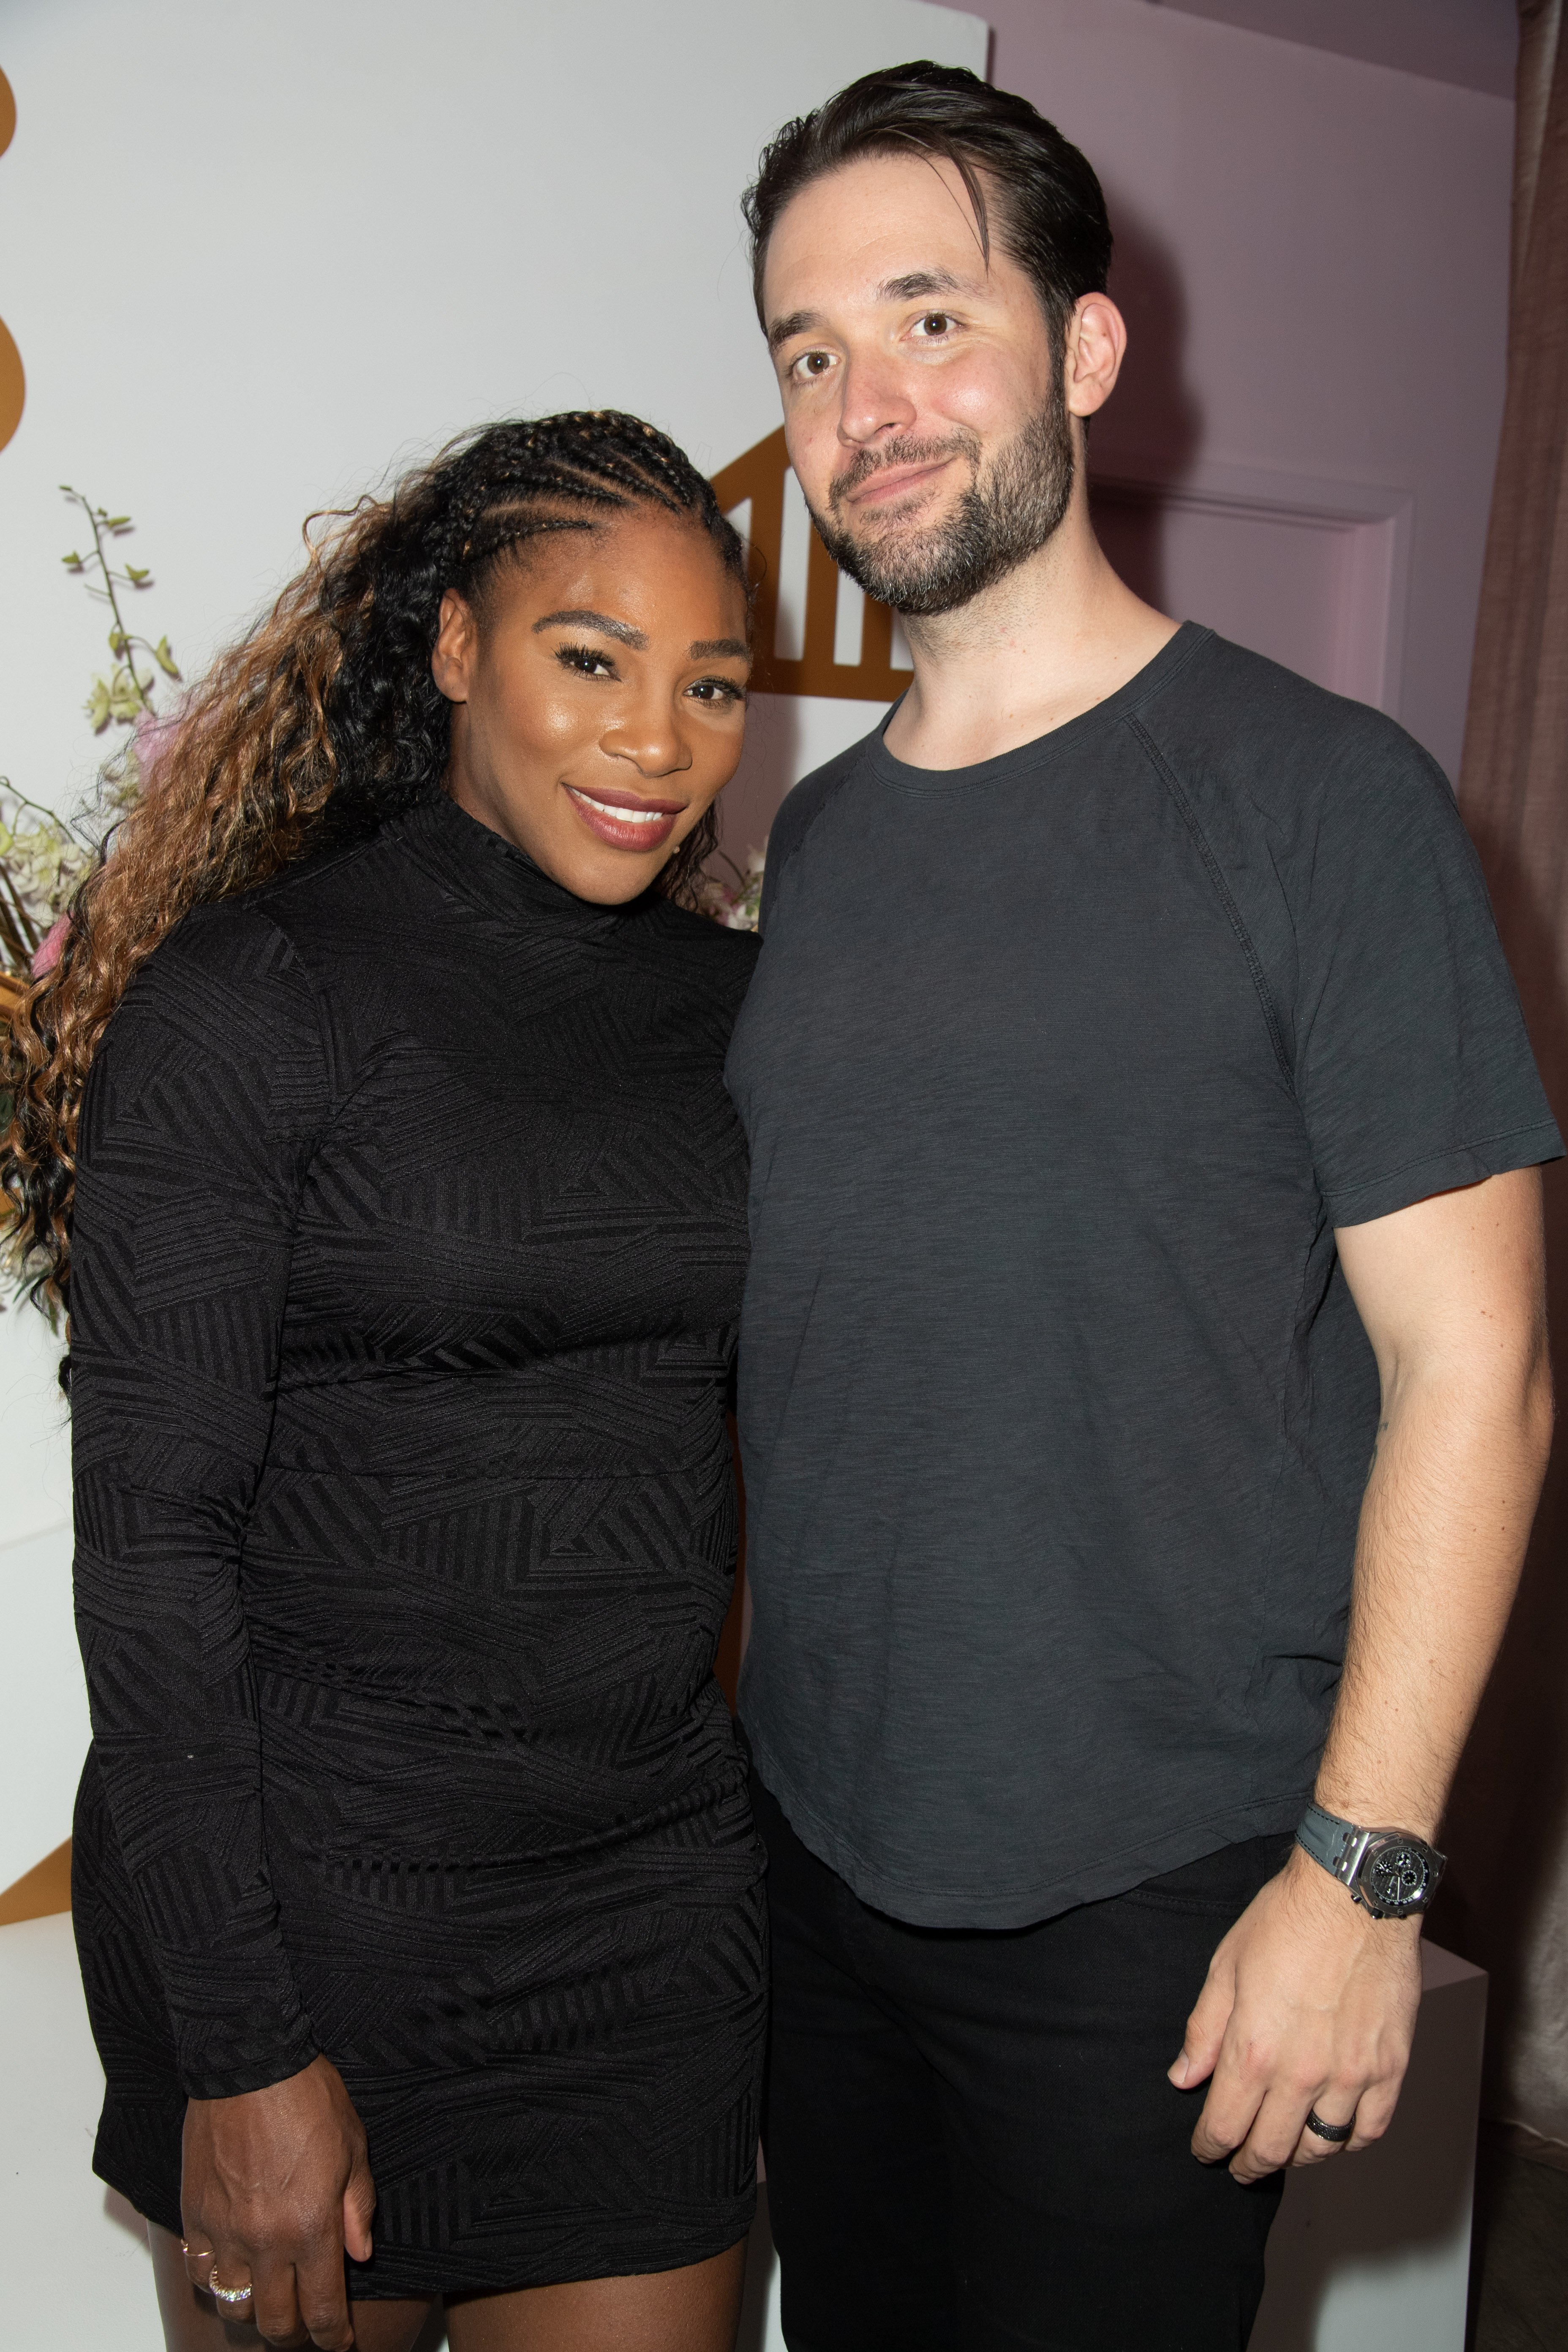 Serena Williams and Alexis Ohanian at The Serena Collection Pop-Up VIP Reception on November 30, 2018 l Source: Getty Images